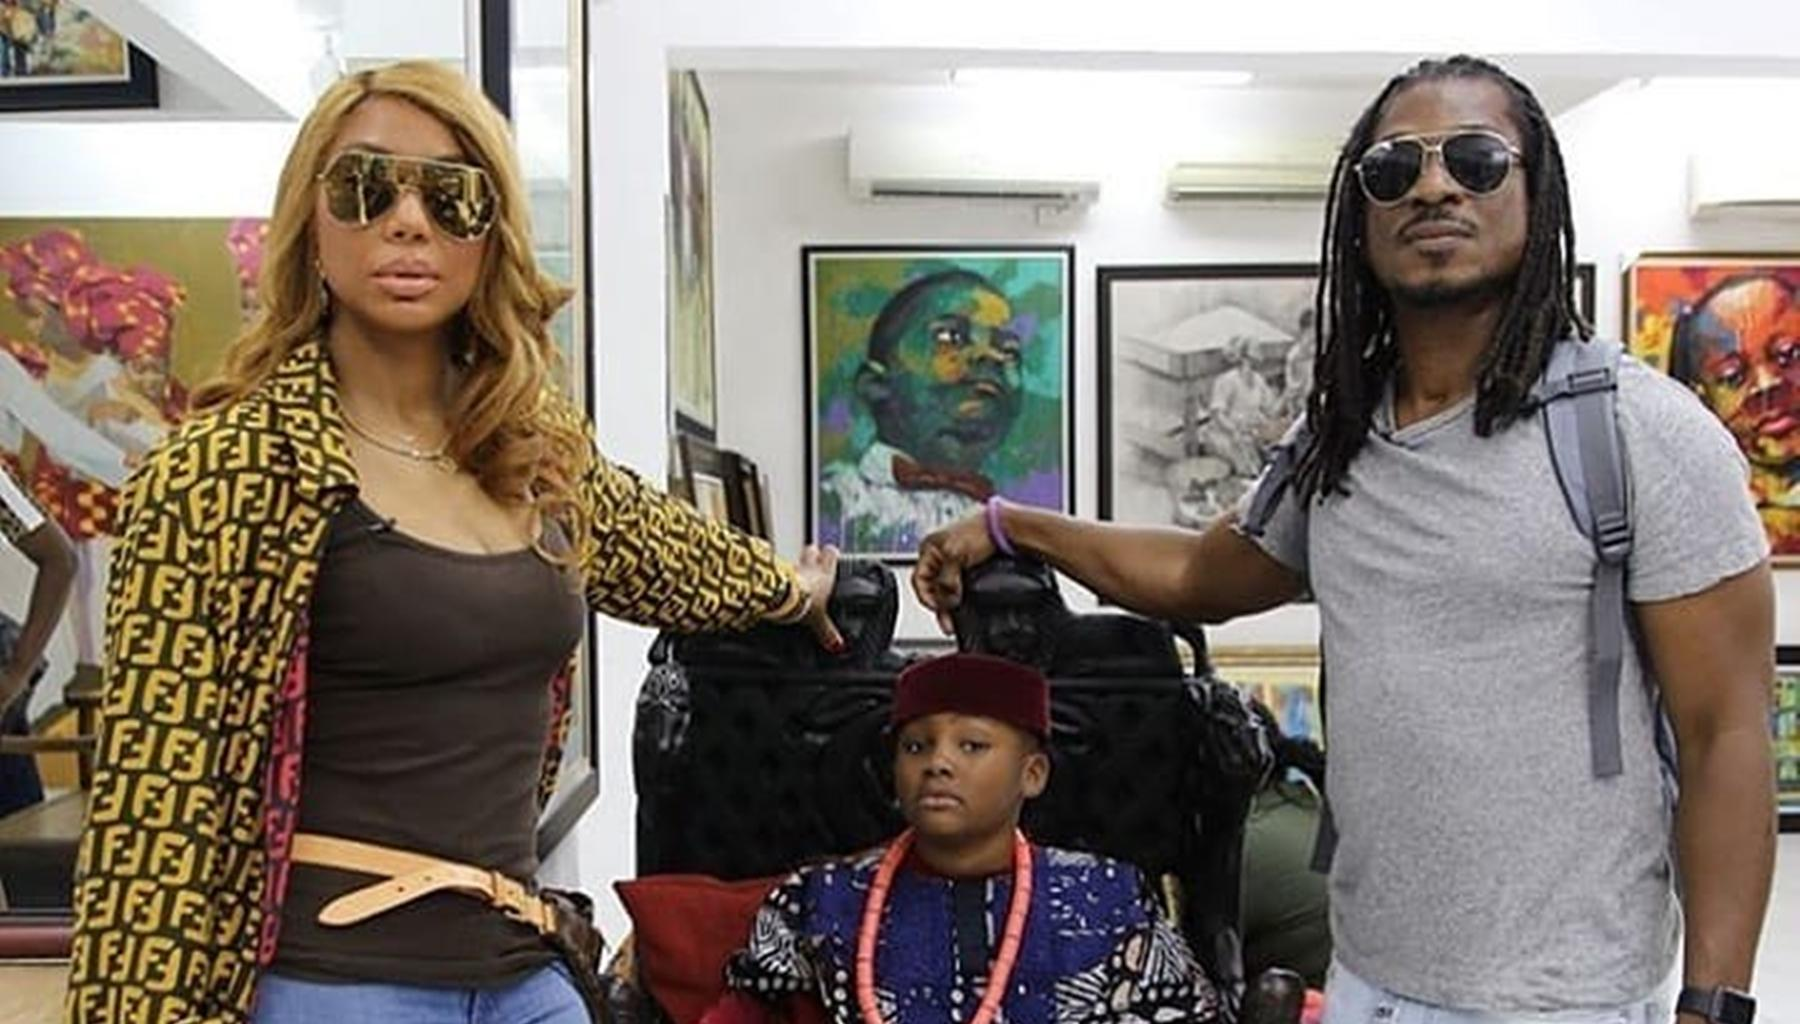 Tamar Braxton's BF, David Adefeso Teaches You How To Protect Your Assets During The Global Crisis